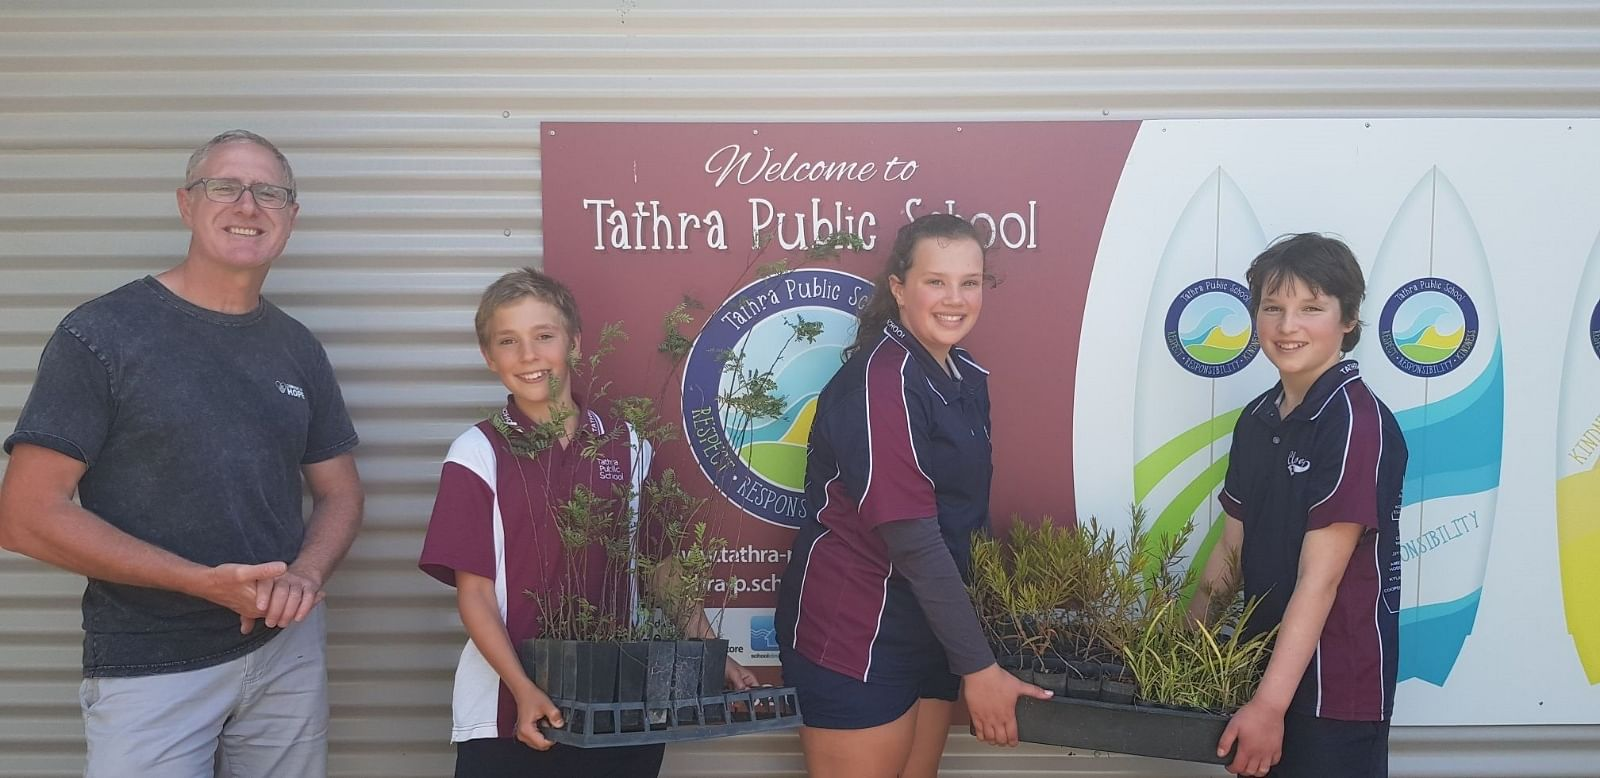 Photograph from left to right is Kevin Cassanego, Business and Program Manager, Convoy of Hope Oceania, Henry Baxter, Ava Wiggins and Nina Lauder from Tathra Public School.